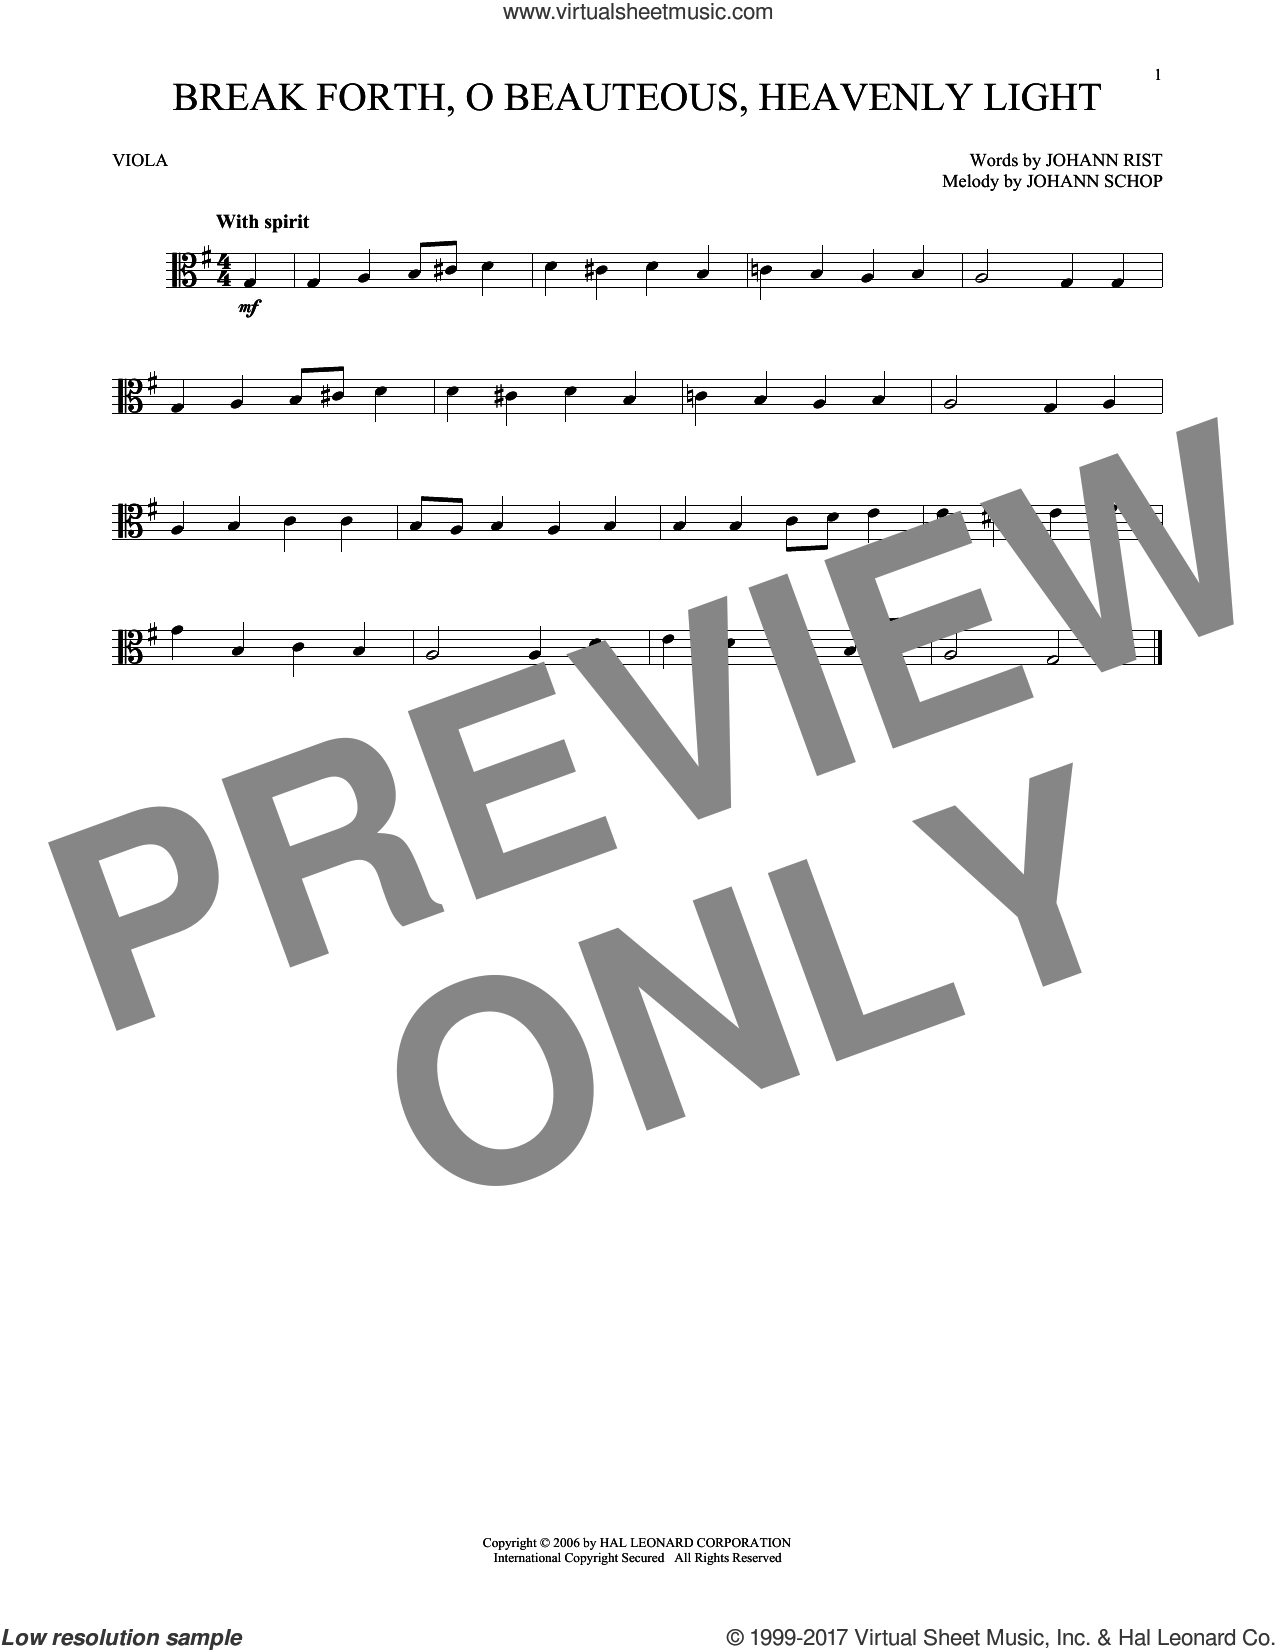 Break Forth, O Beauteous, Heavenly Light sheet music for viola solo by Johann Sebastian Bach, Johann Rist and Johann Schop, classical score, intermediate skill level